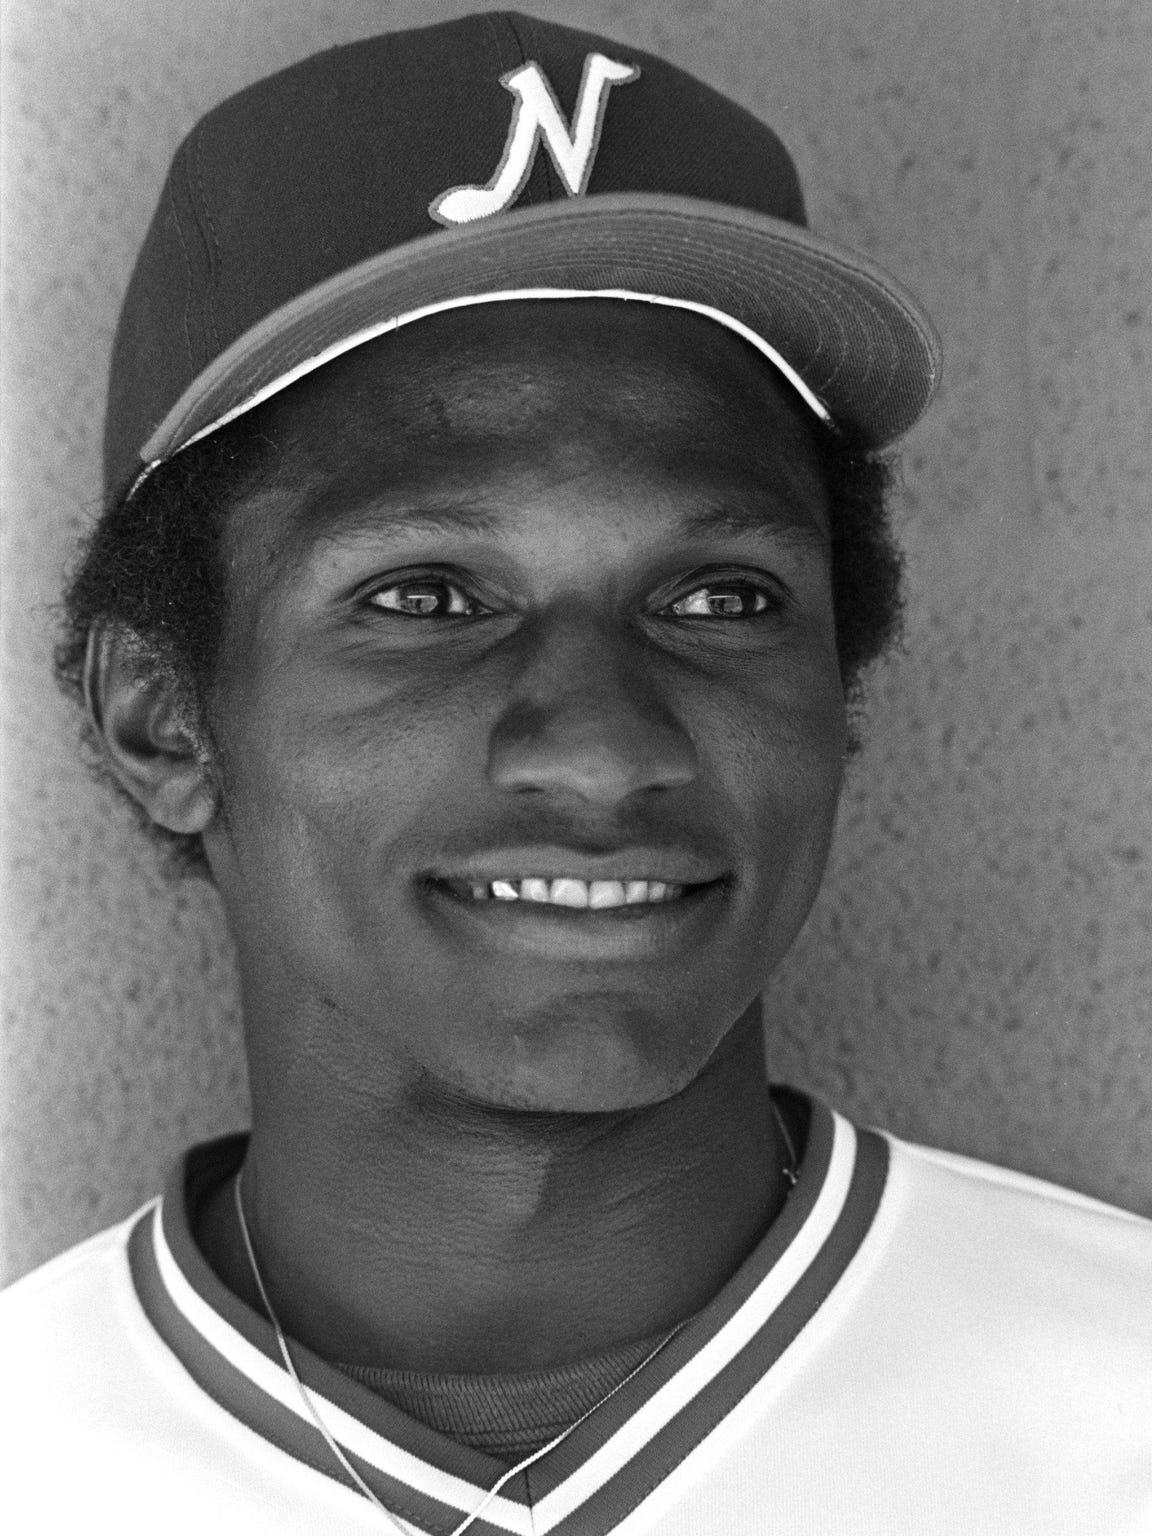 Otis Nixon of the 1981 Nashville Sounds minor AA baseball